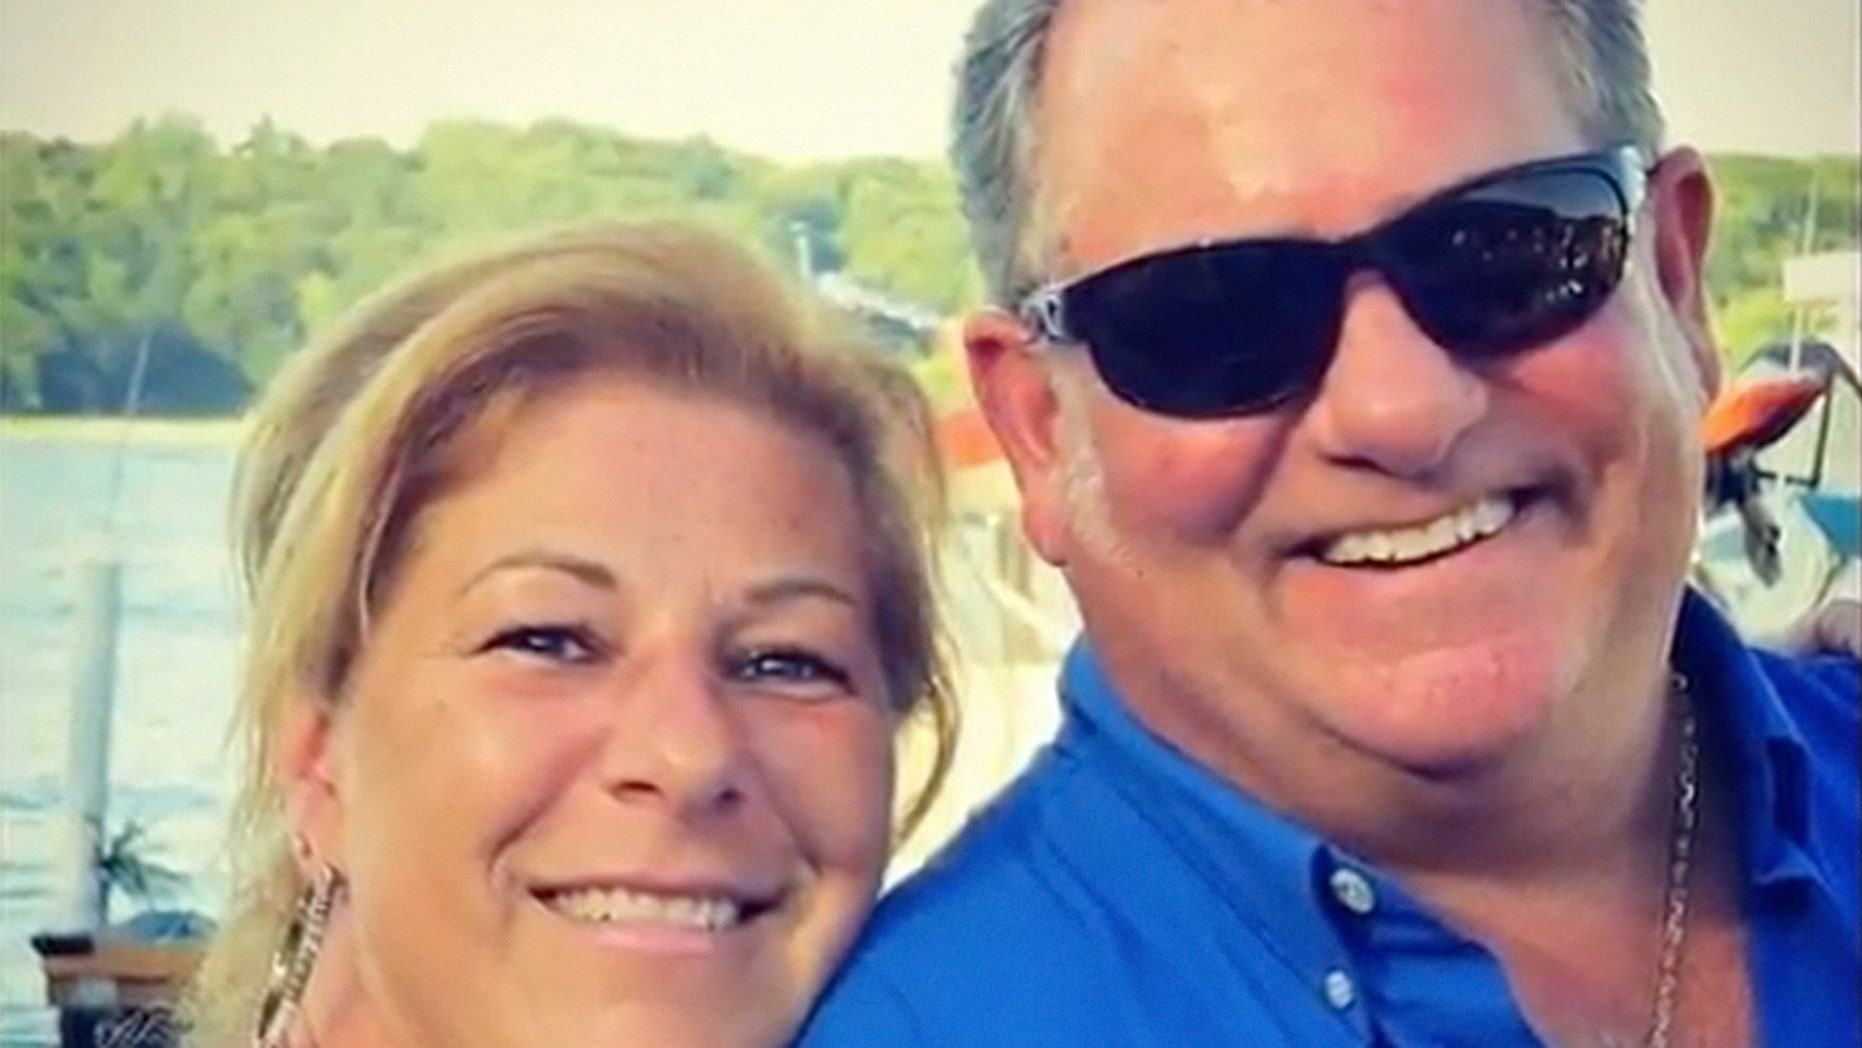 Debbie Cardarelli filed a lawsuit in the Court of Common Pleas in Philadelphia, seeking more than $1 million in damages after an incident involved her late husband Richard.